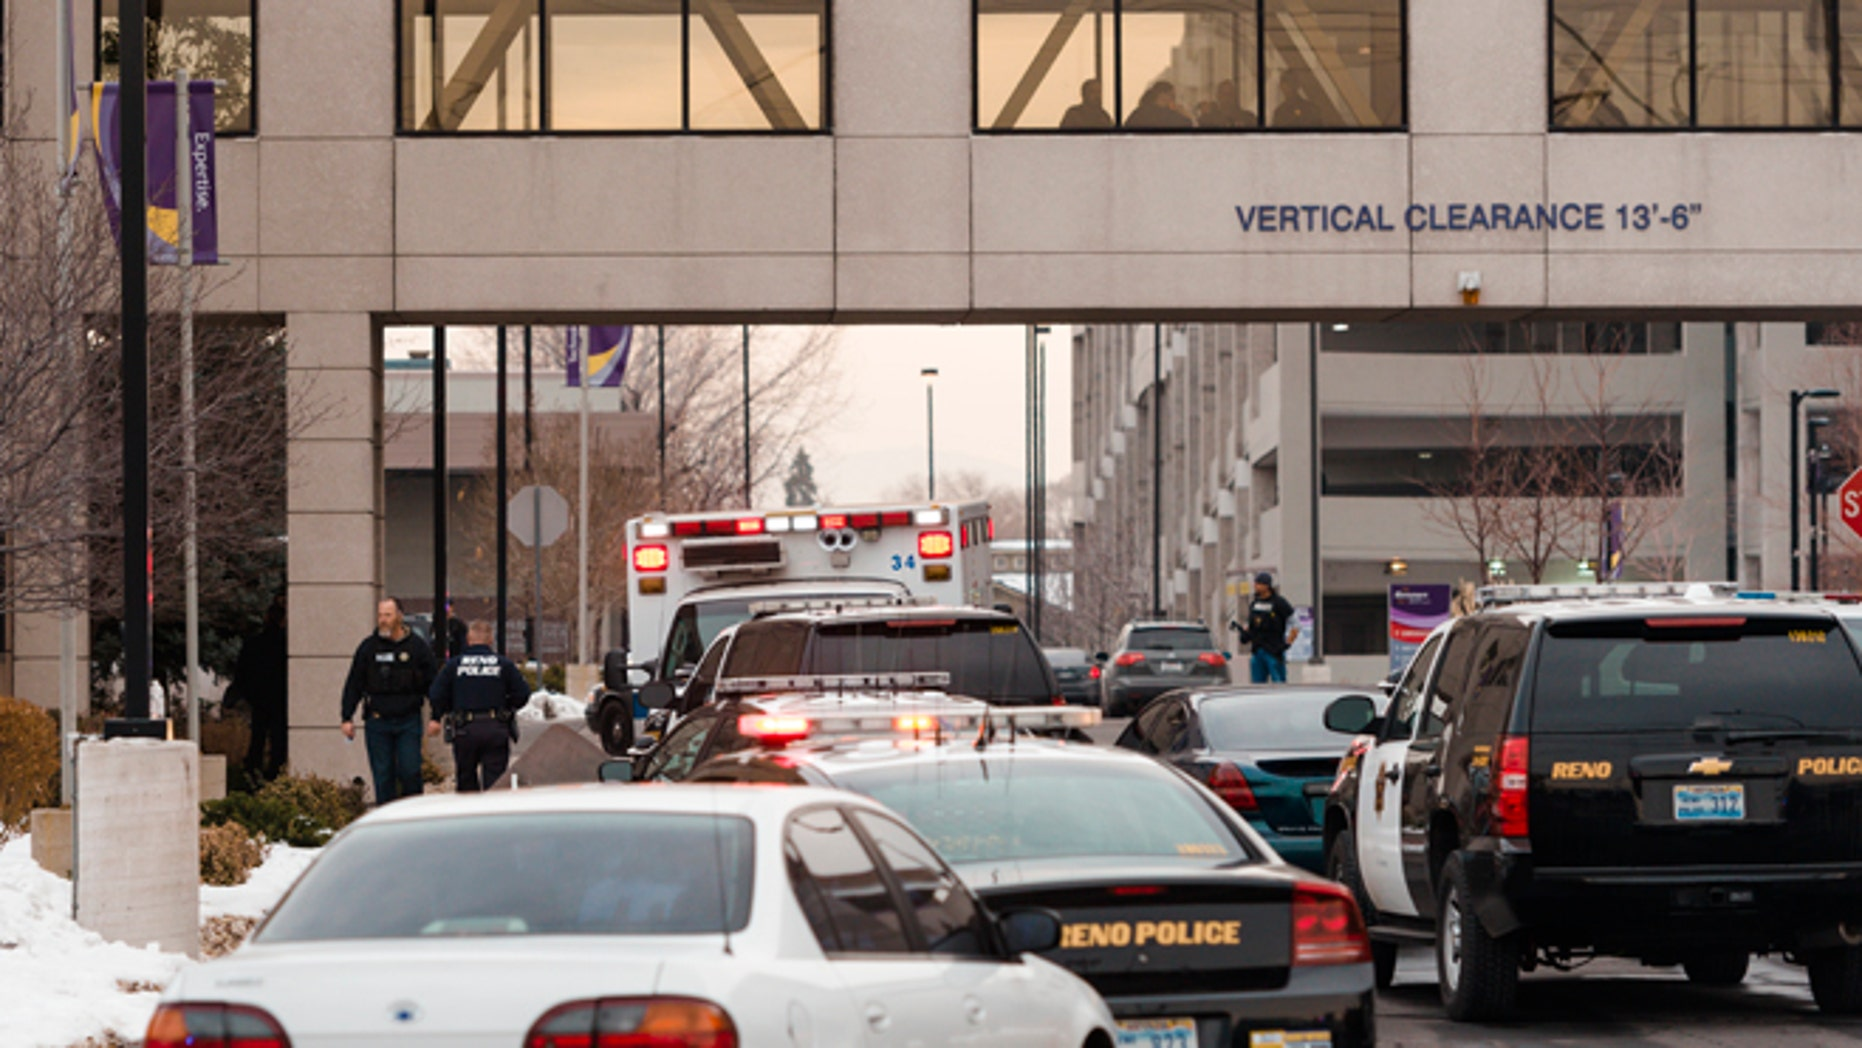 Dec. 17, 2013: Officers gather in front of the Renown Regional Medical Center after a lone gunman shot and injured three people, one fatally, before killing himself in Reno, Nev.